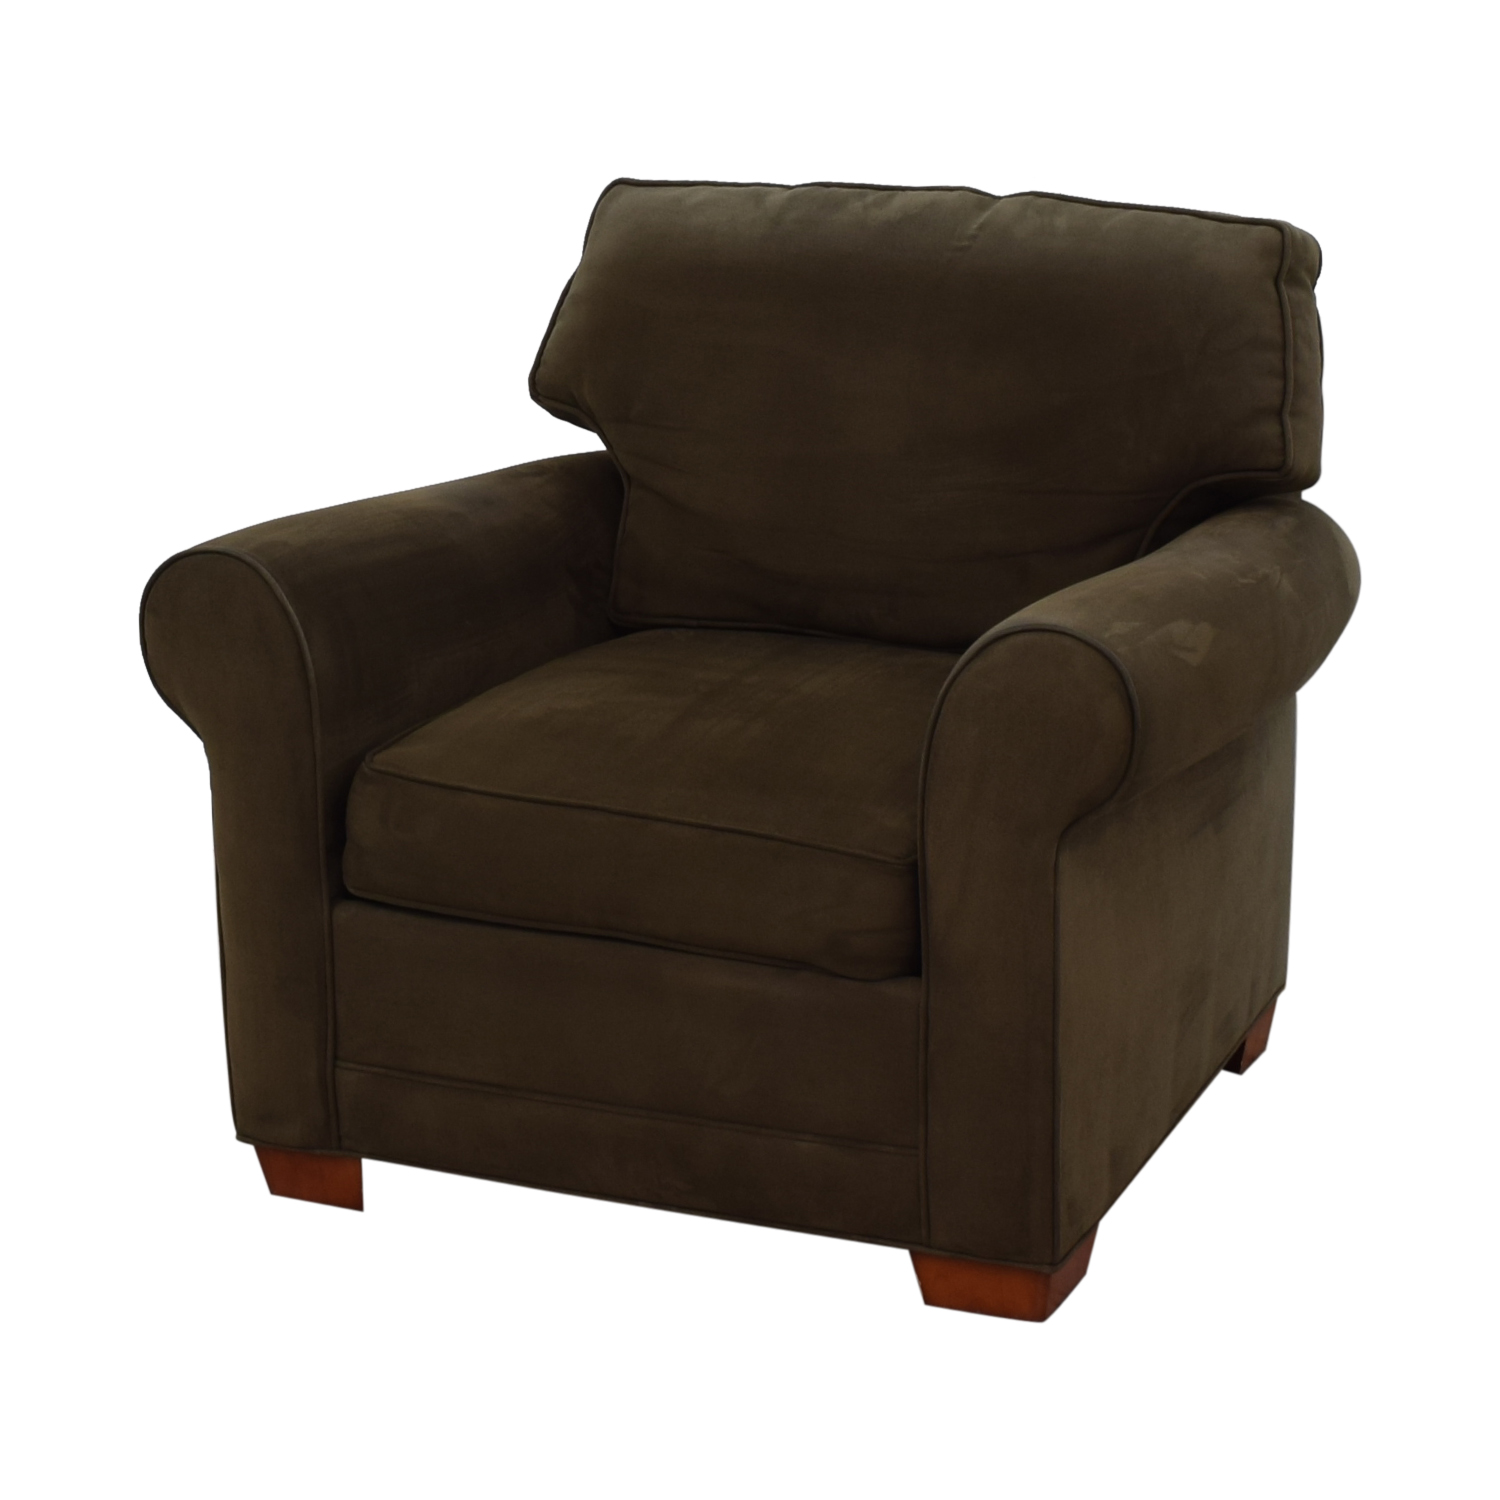 Raymour & Flanigan Raymour & Flanigan Brown Microfiber Accent Chair dimensions